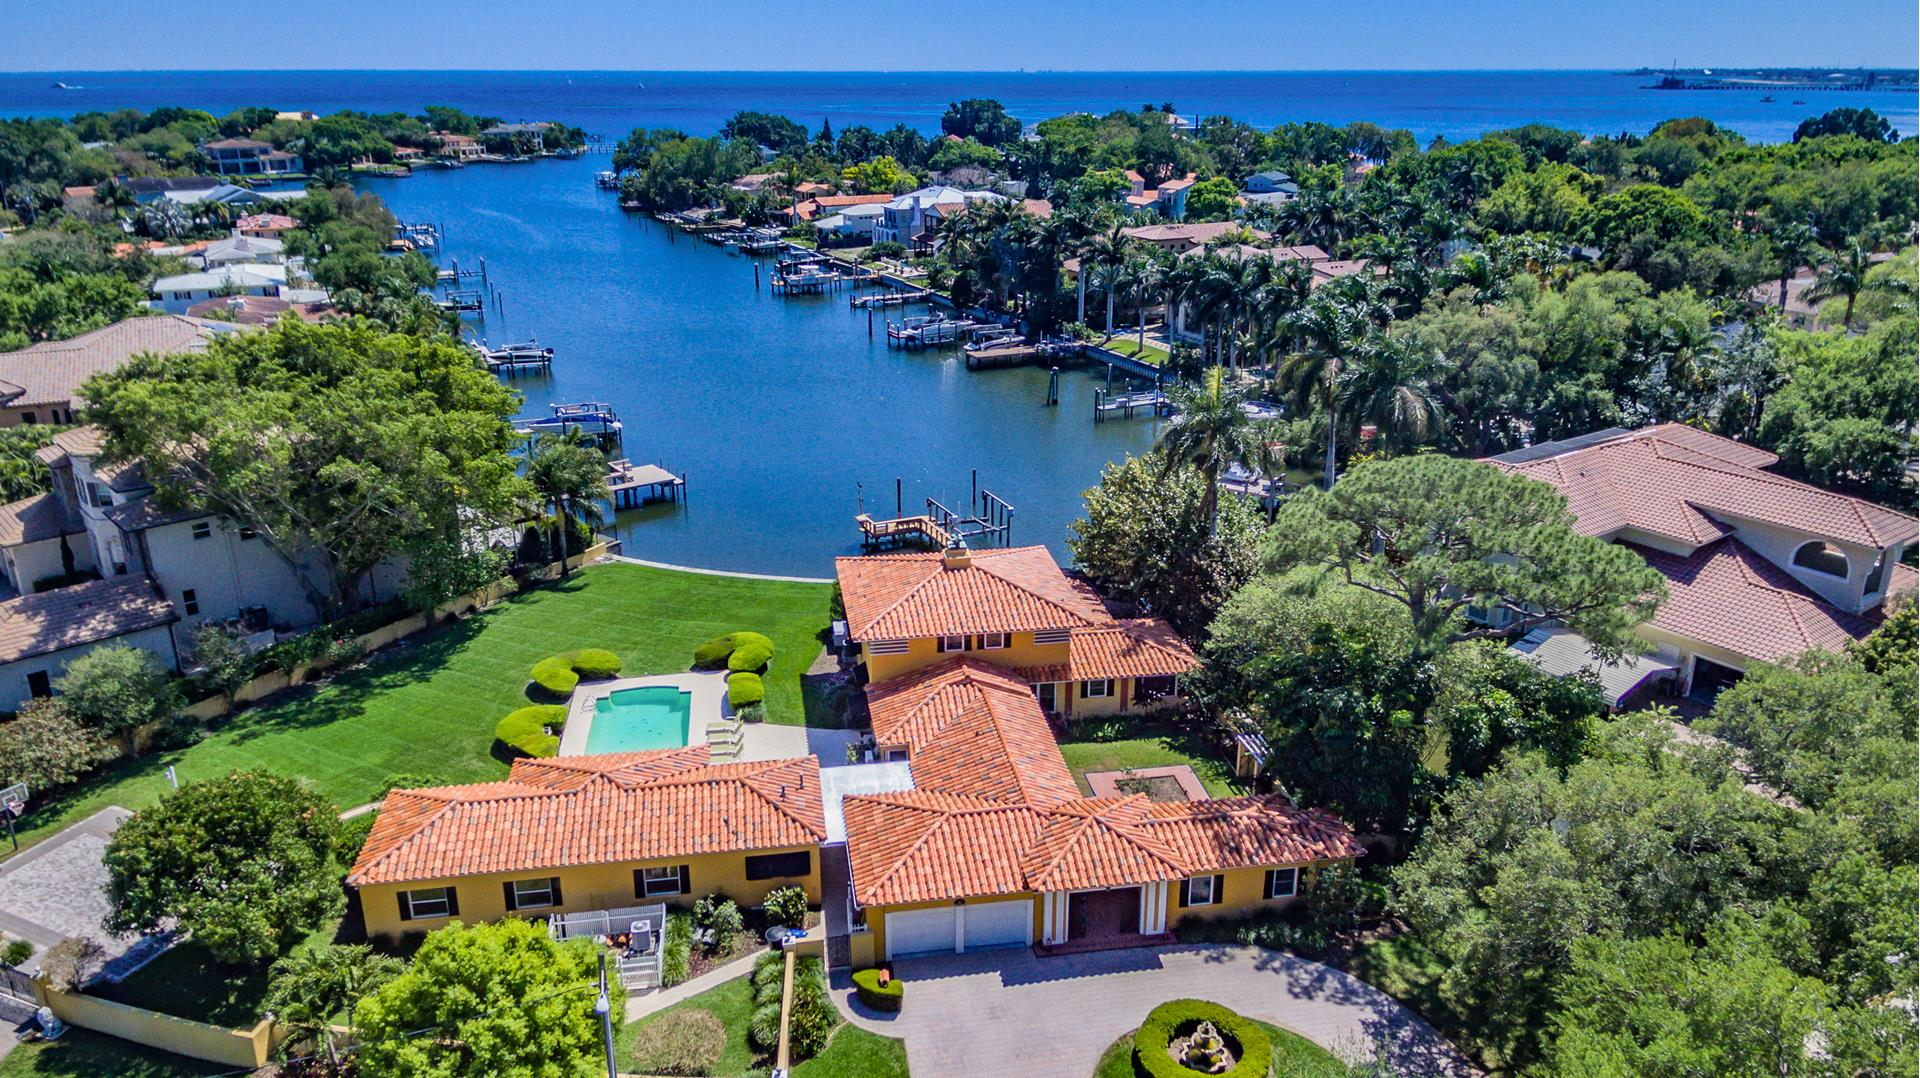 1105 BRIGHTWATERS Boulevard - St. Petersburg, Florida